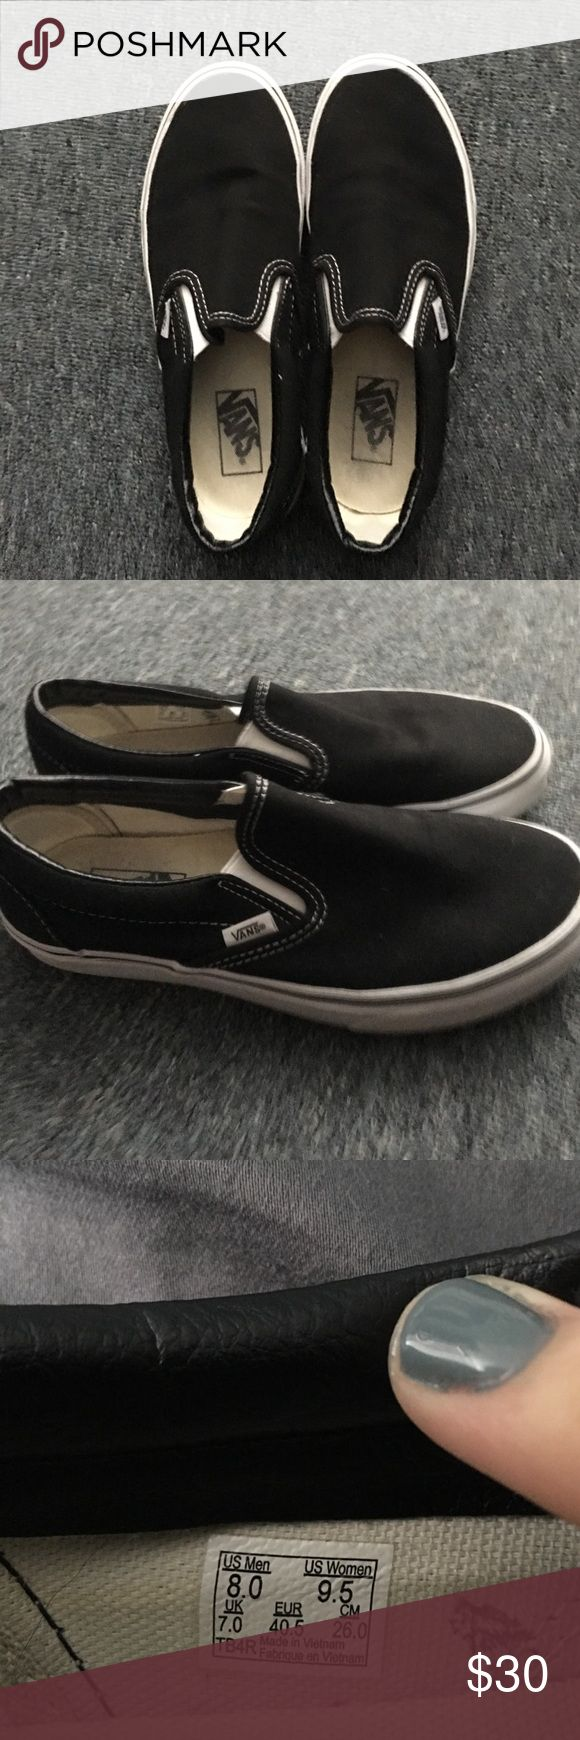 black classic slip-on vans been worn once, basically brand new. great condition Vans Shoes Sneakers